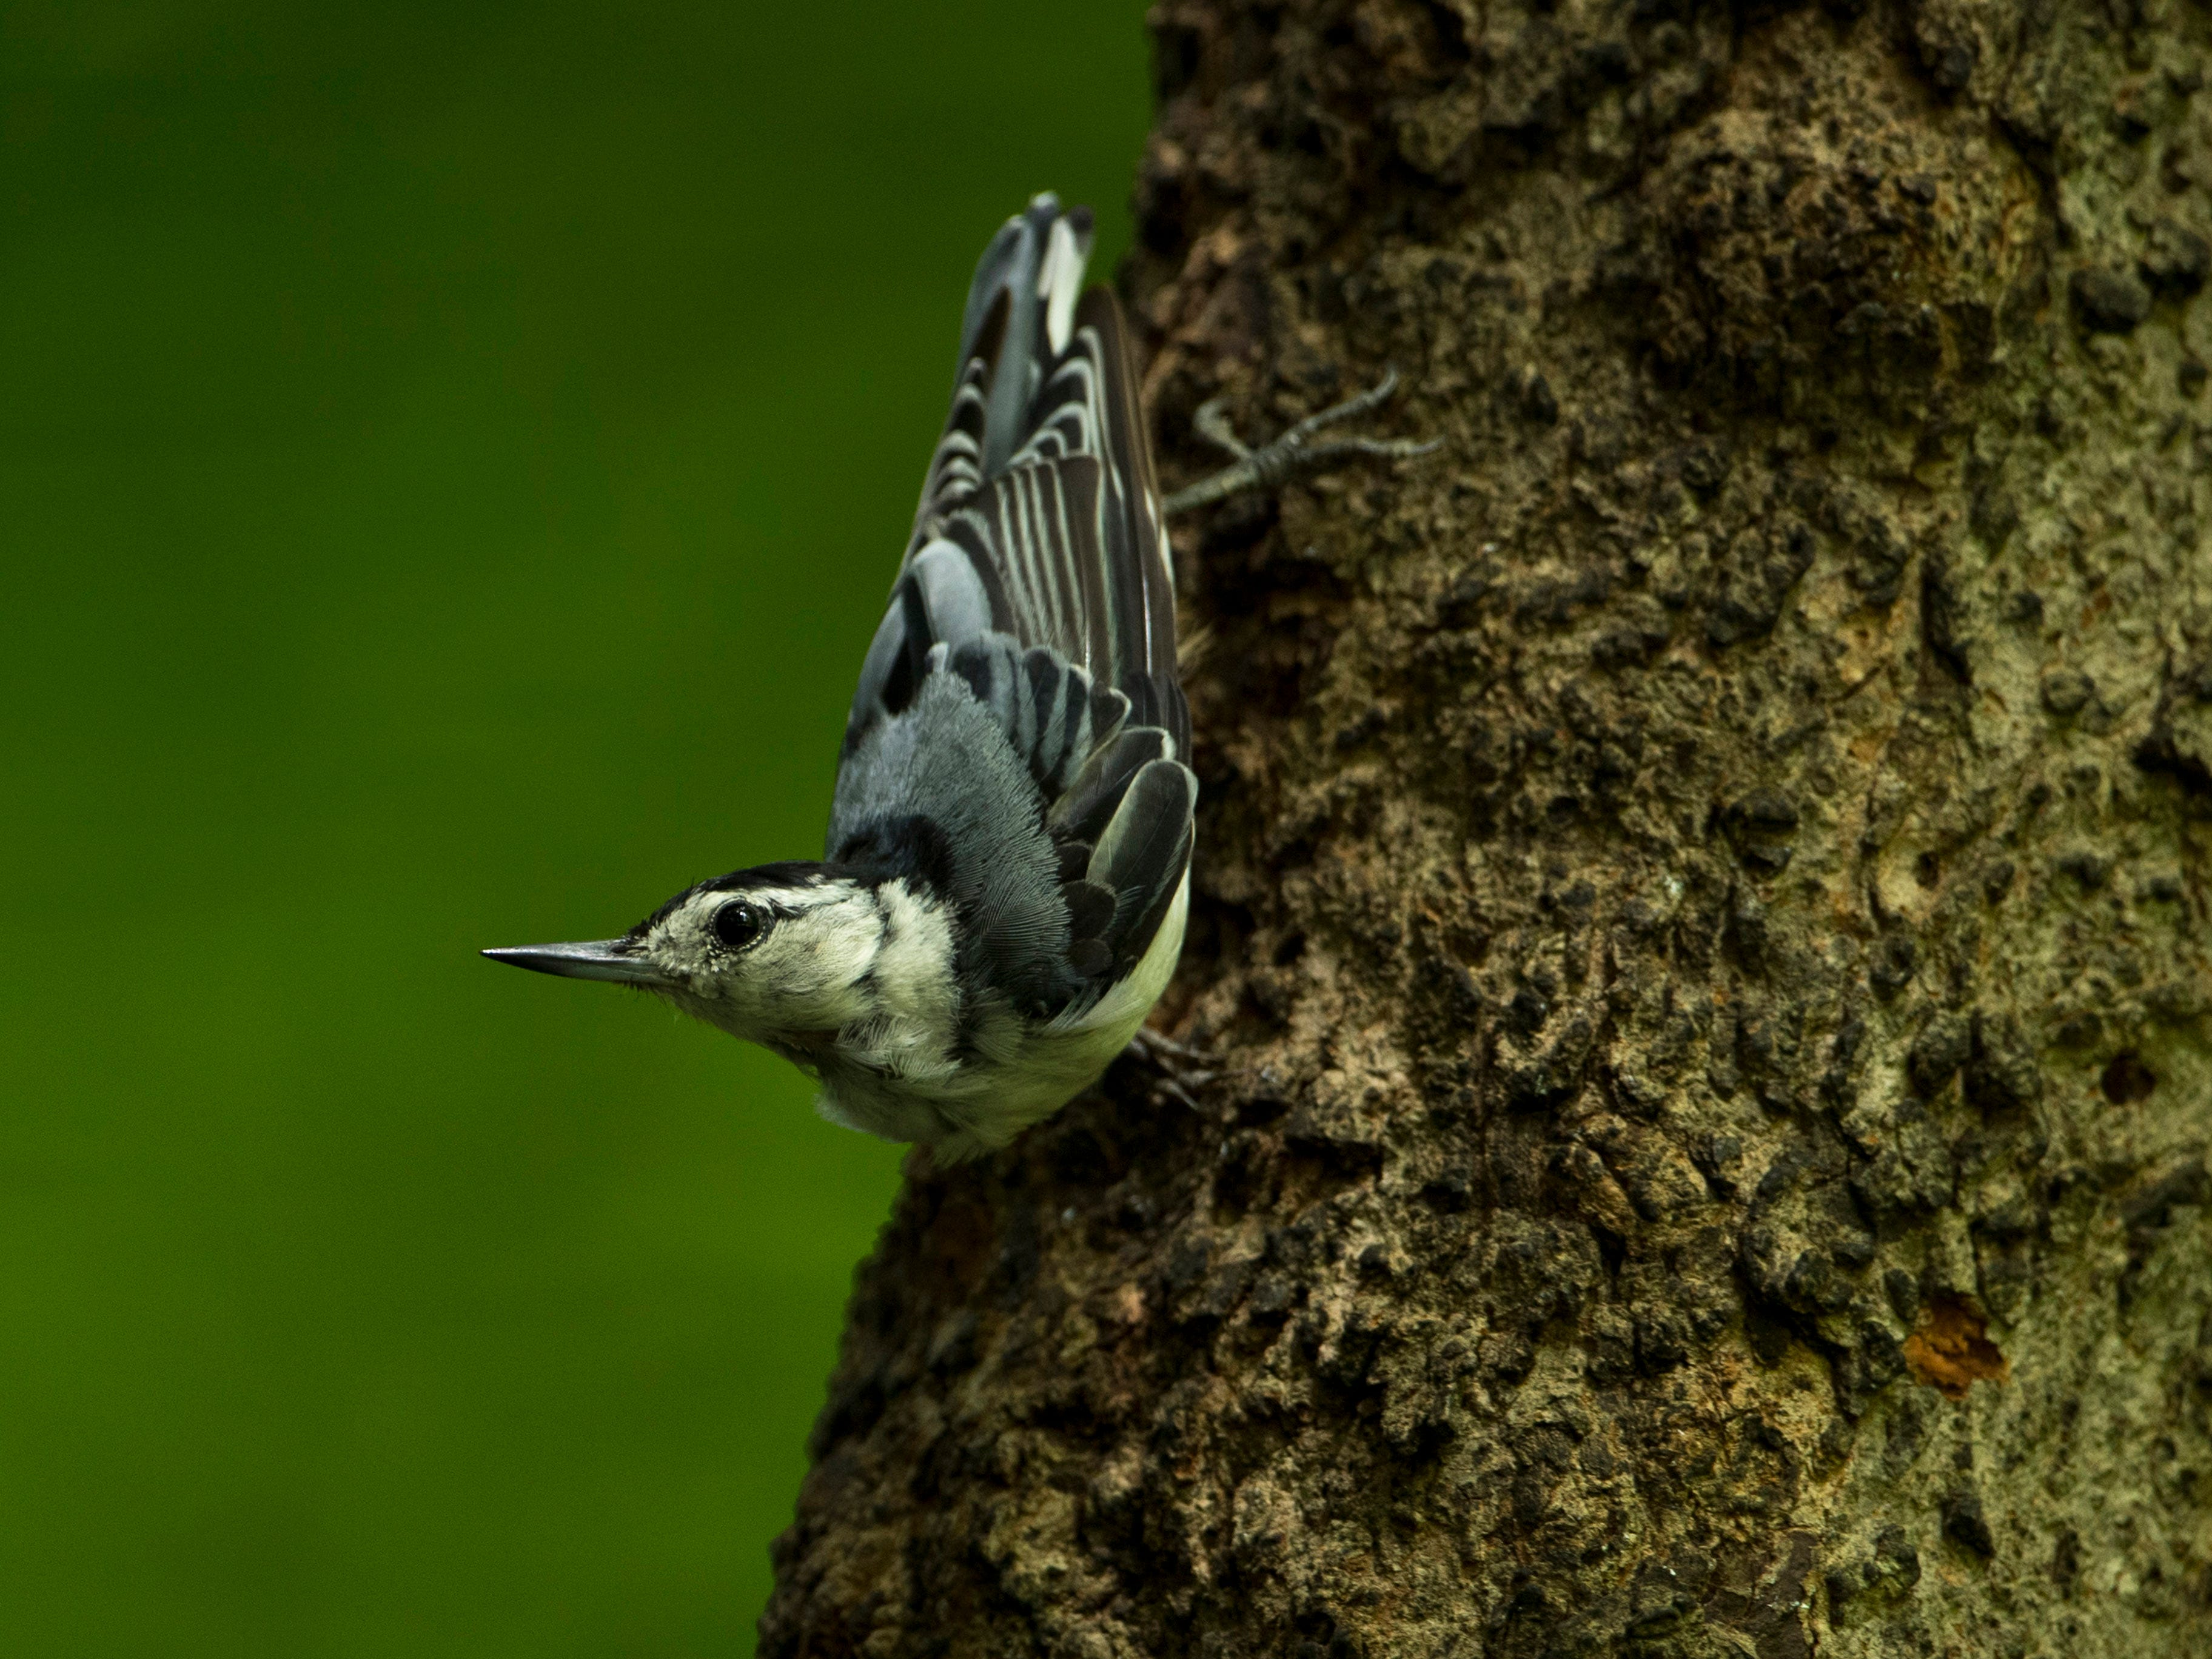 A male white-breasted nuthatch descends a tree trunk in search of a meal outside the Wesselman Woods Nature Preserve's bird viewing station in late June.